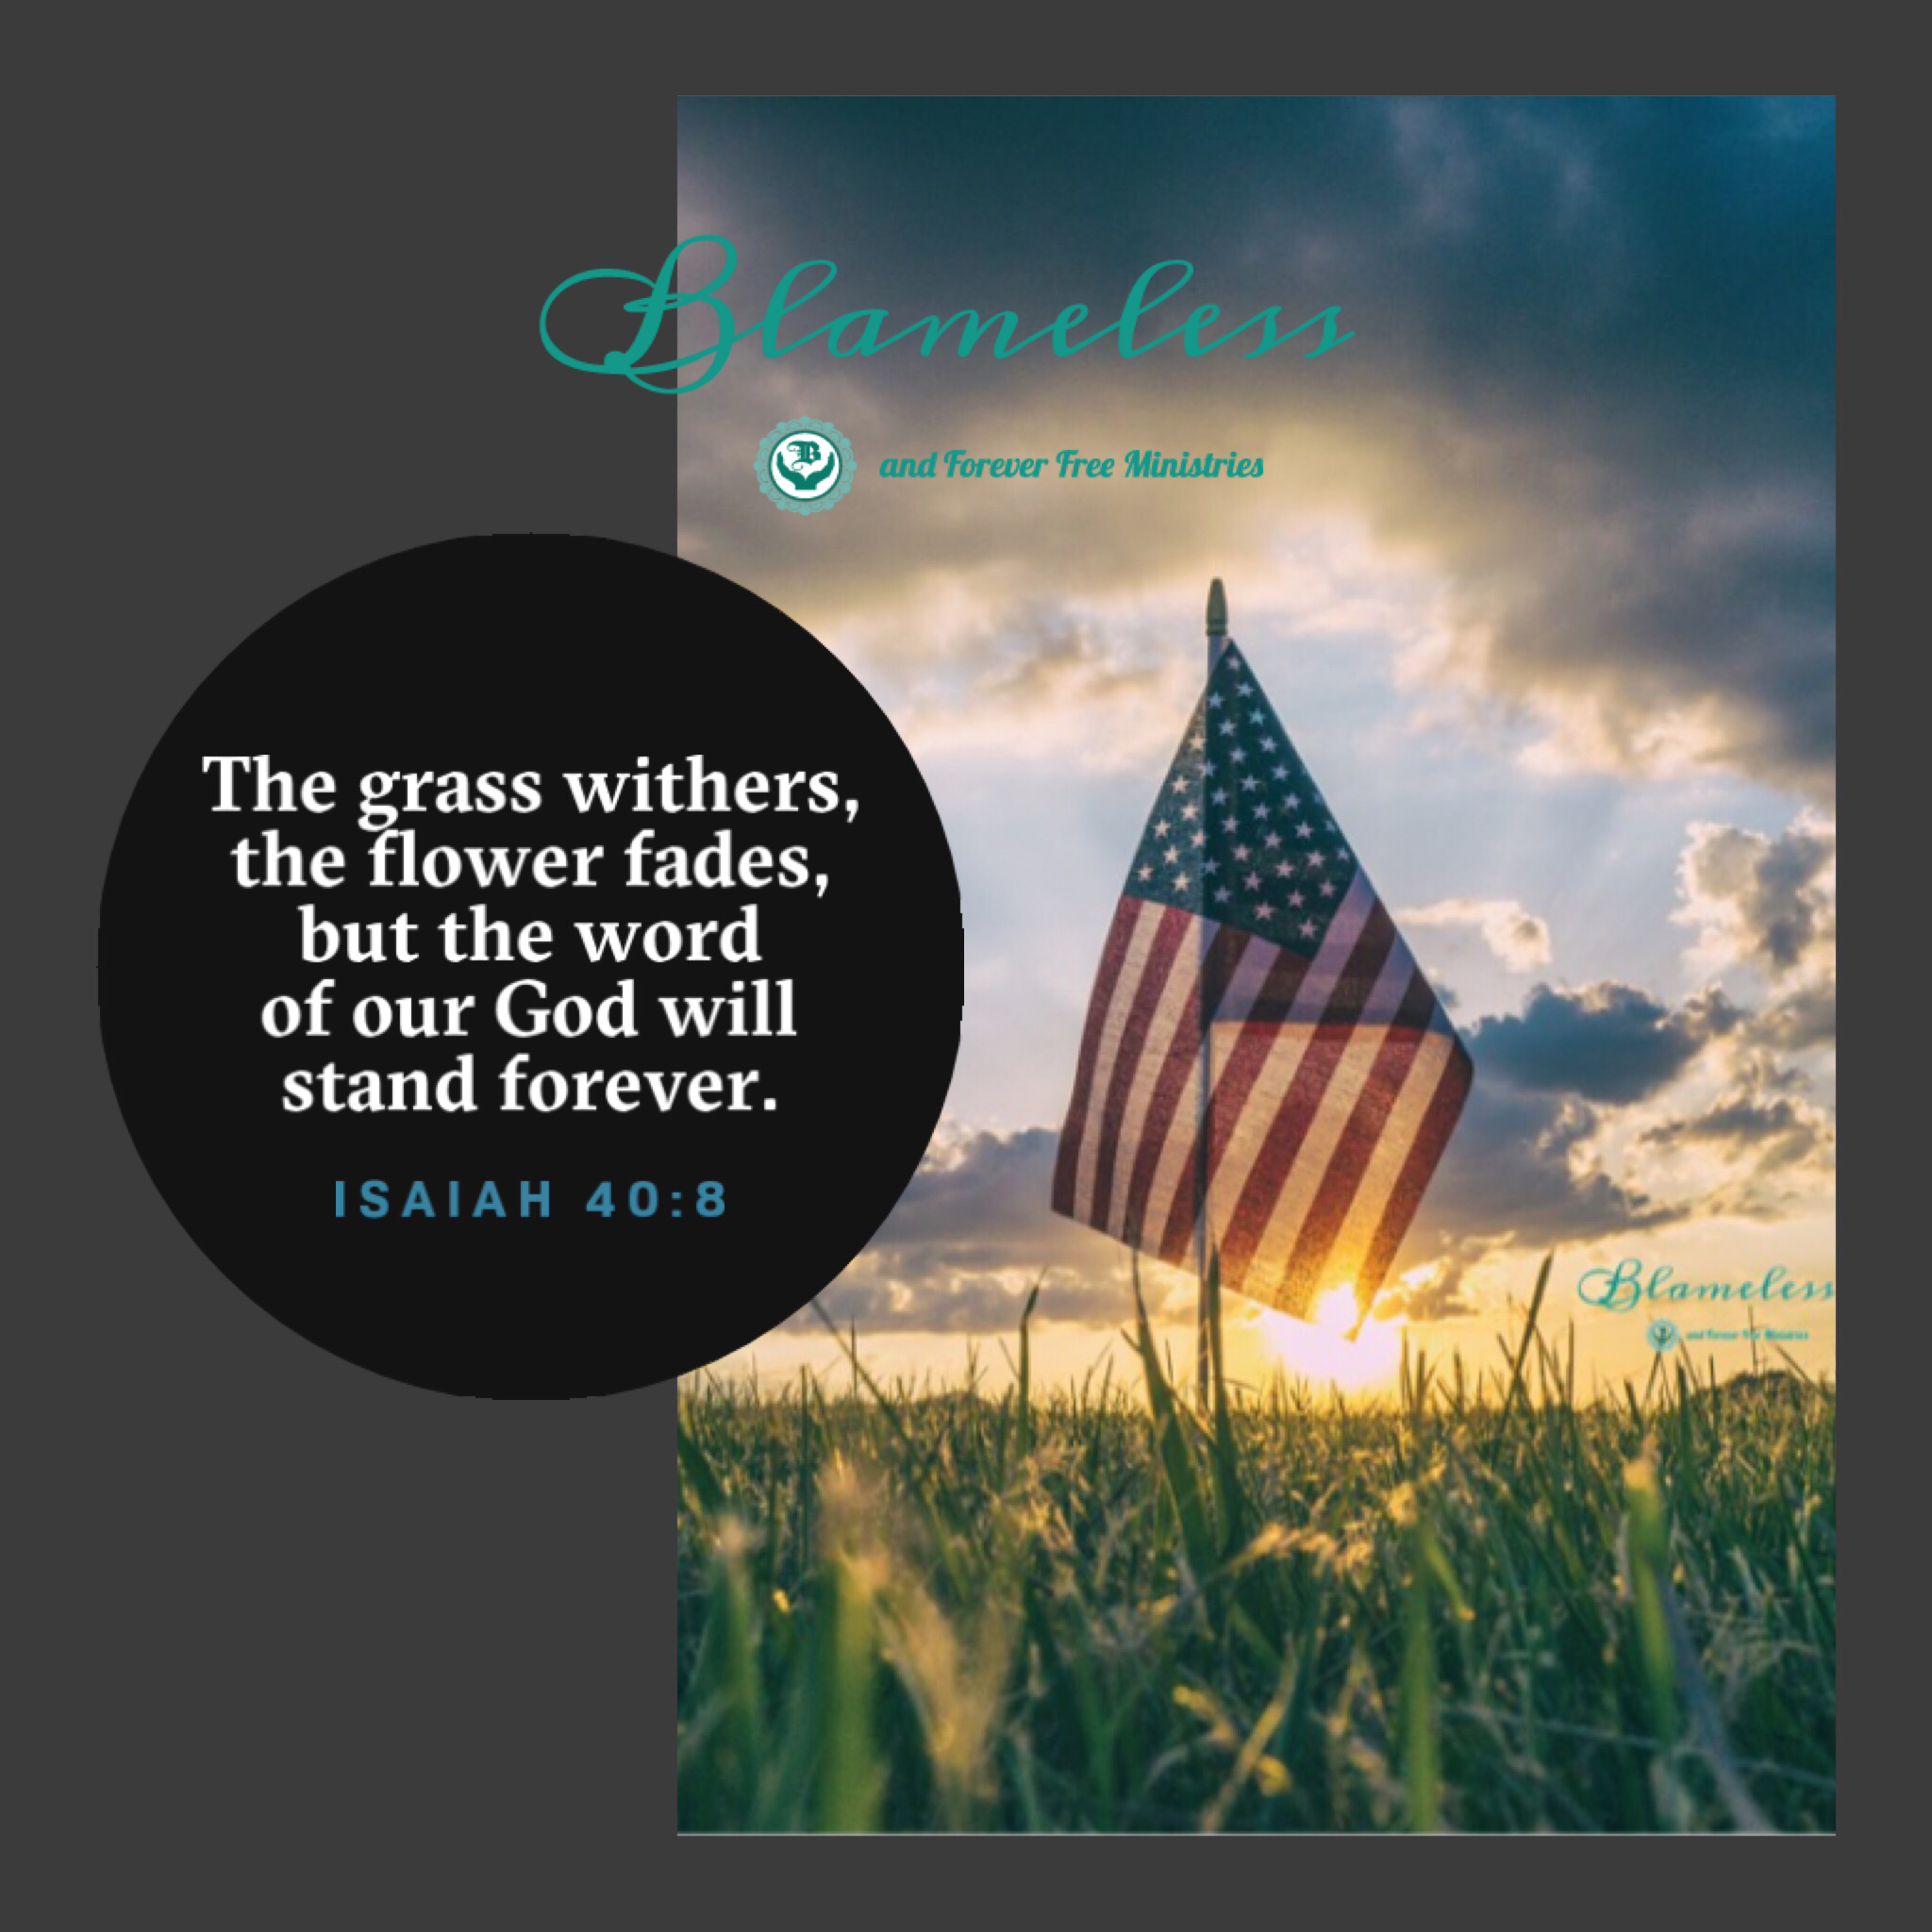 Blameless Isaiah 40:8, The grass withers, the flower fades, but the word of our God will stand forever.